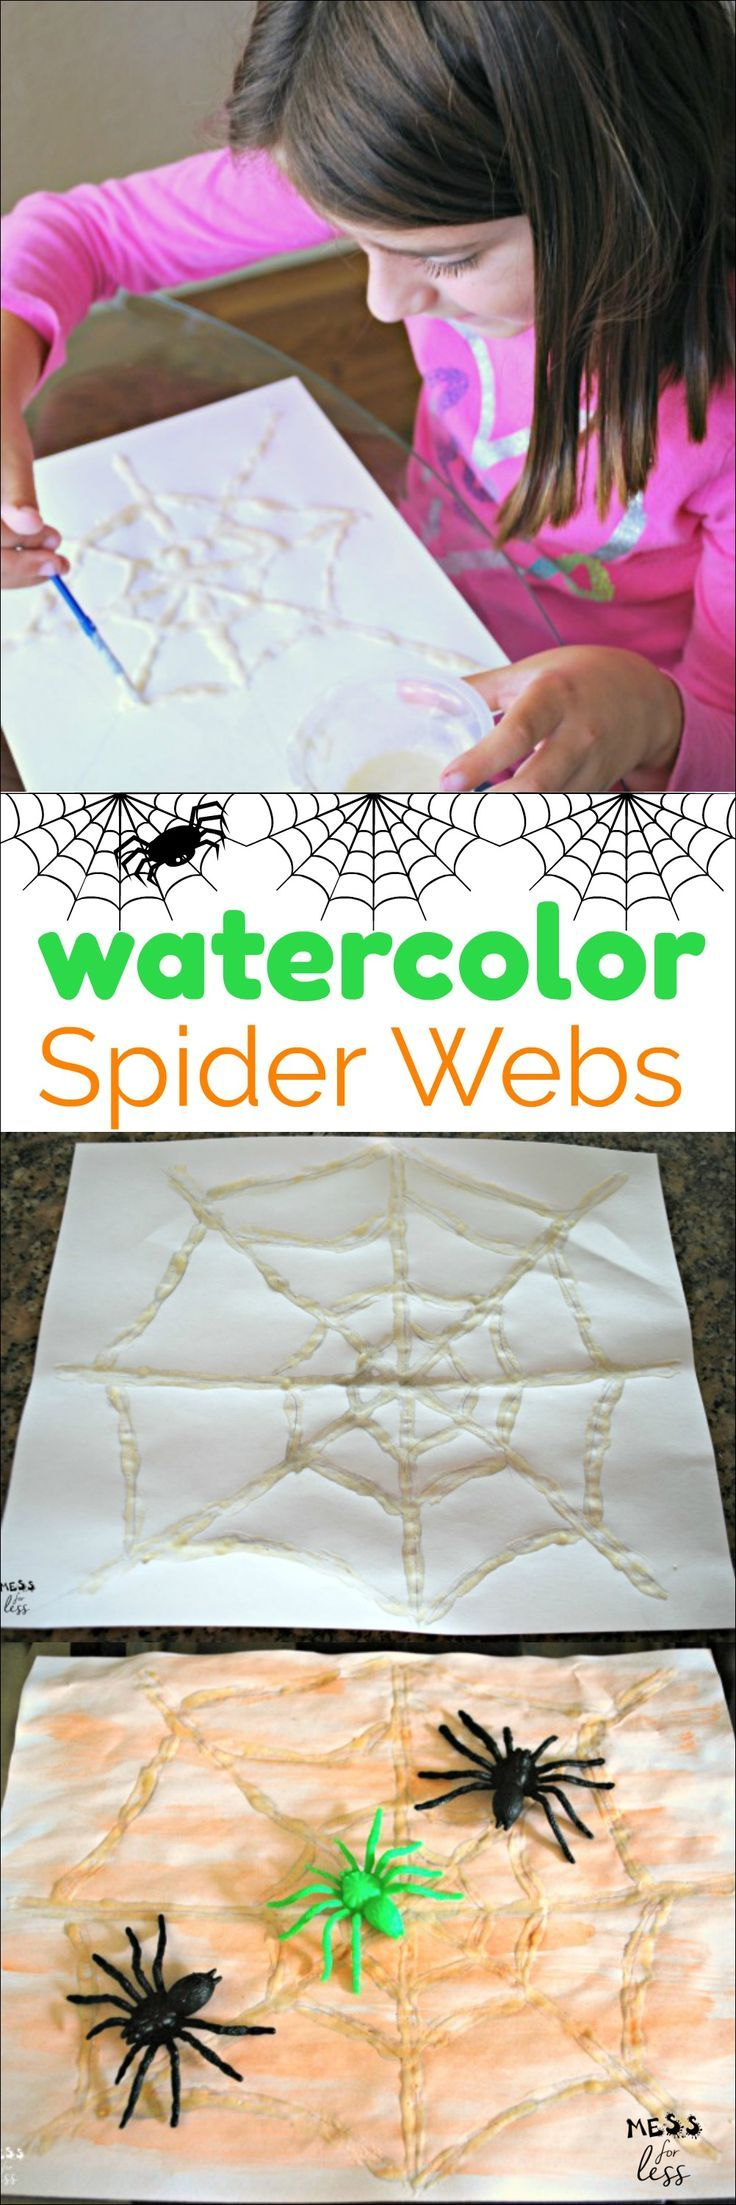 These watercolor spider webs are easy to